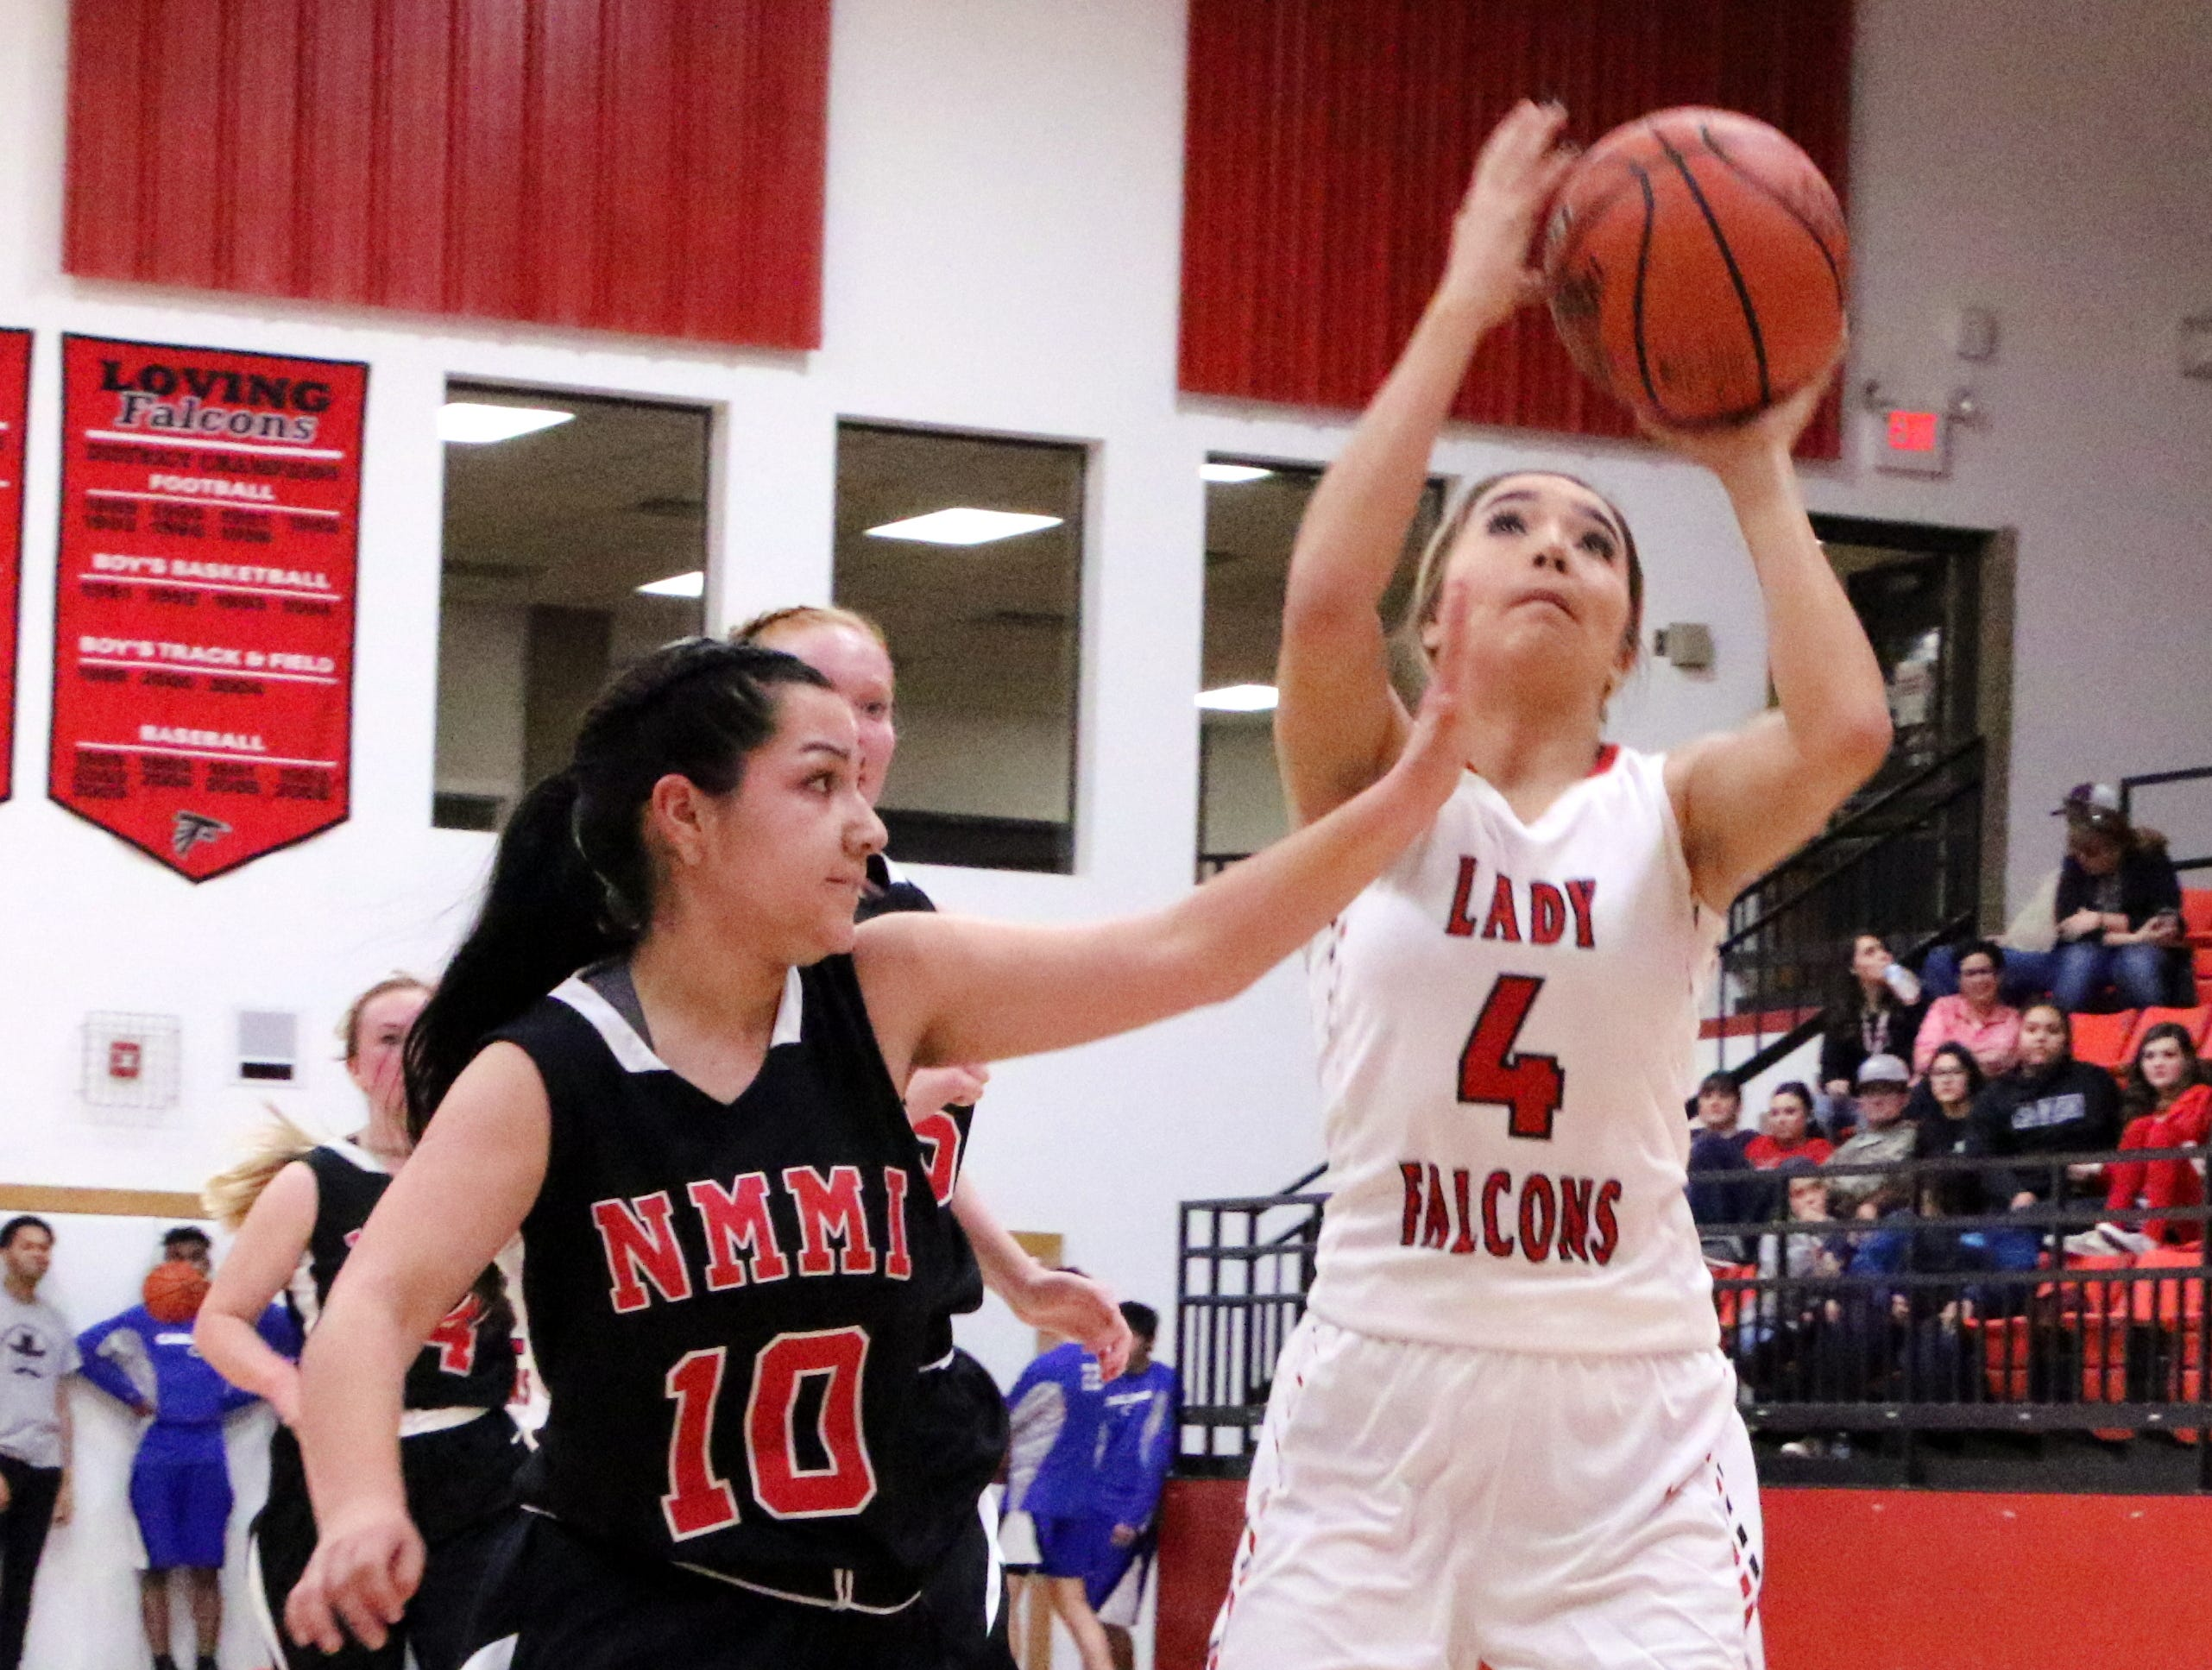 Second half highlights from Loving's game against NMMI on Jan. 17, 2019. The Lady Falcons beat the Colts, 59-44.